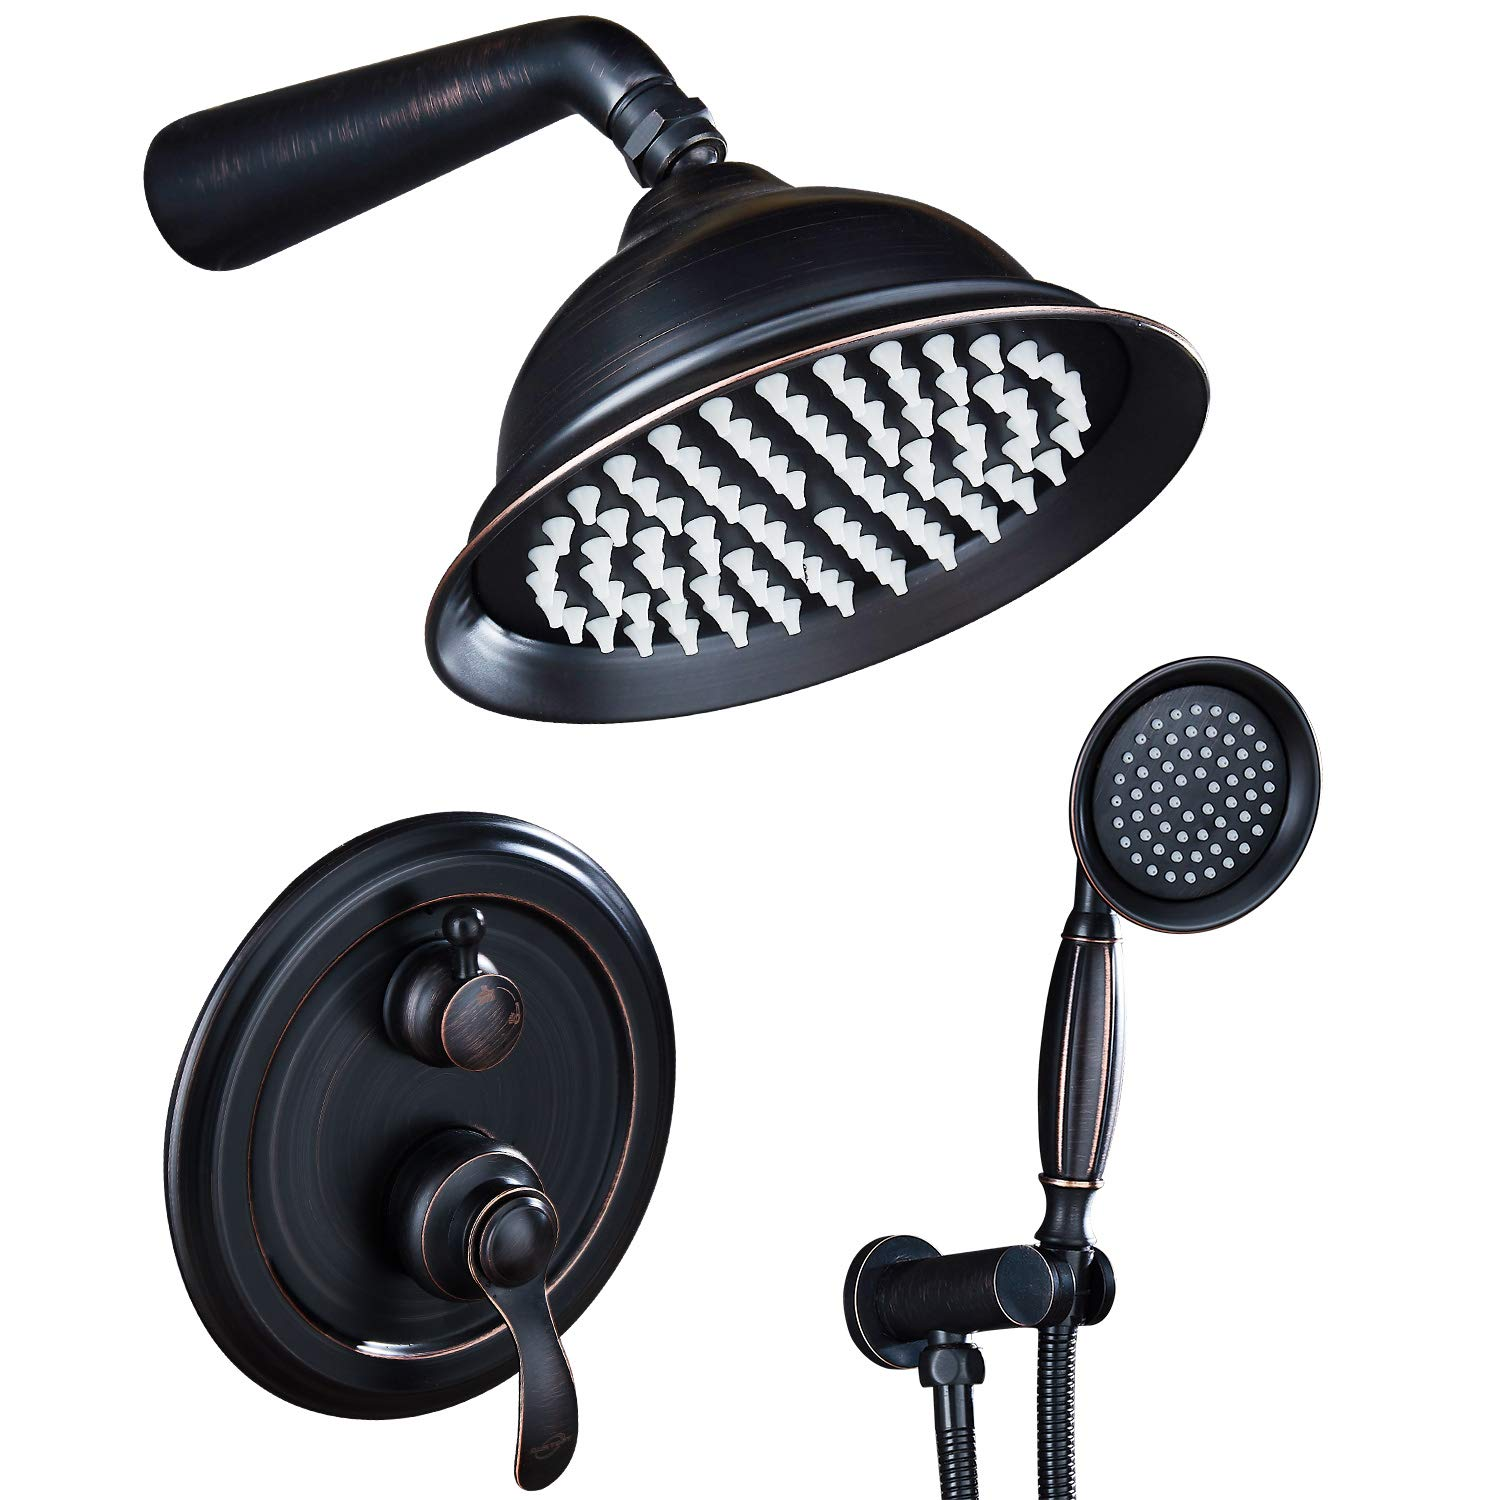 AUKTOPT AS-LB3508 Rainfall Shower Head System with Handshower Bathroom Luxury Rain Mixer Combo Set, A, Oil Rubbed Bronze(Contain Faucet Rough-In Valve)